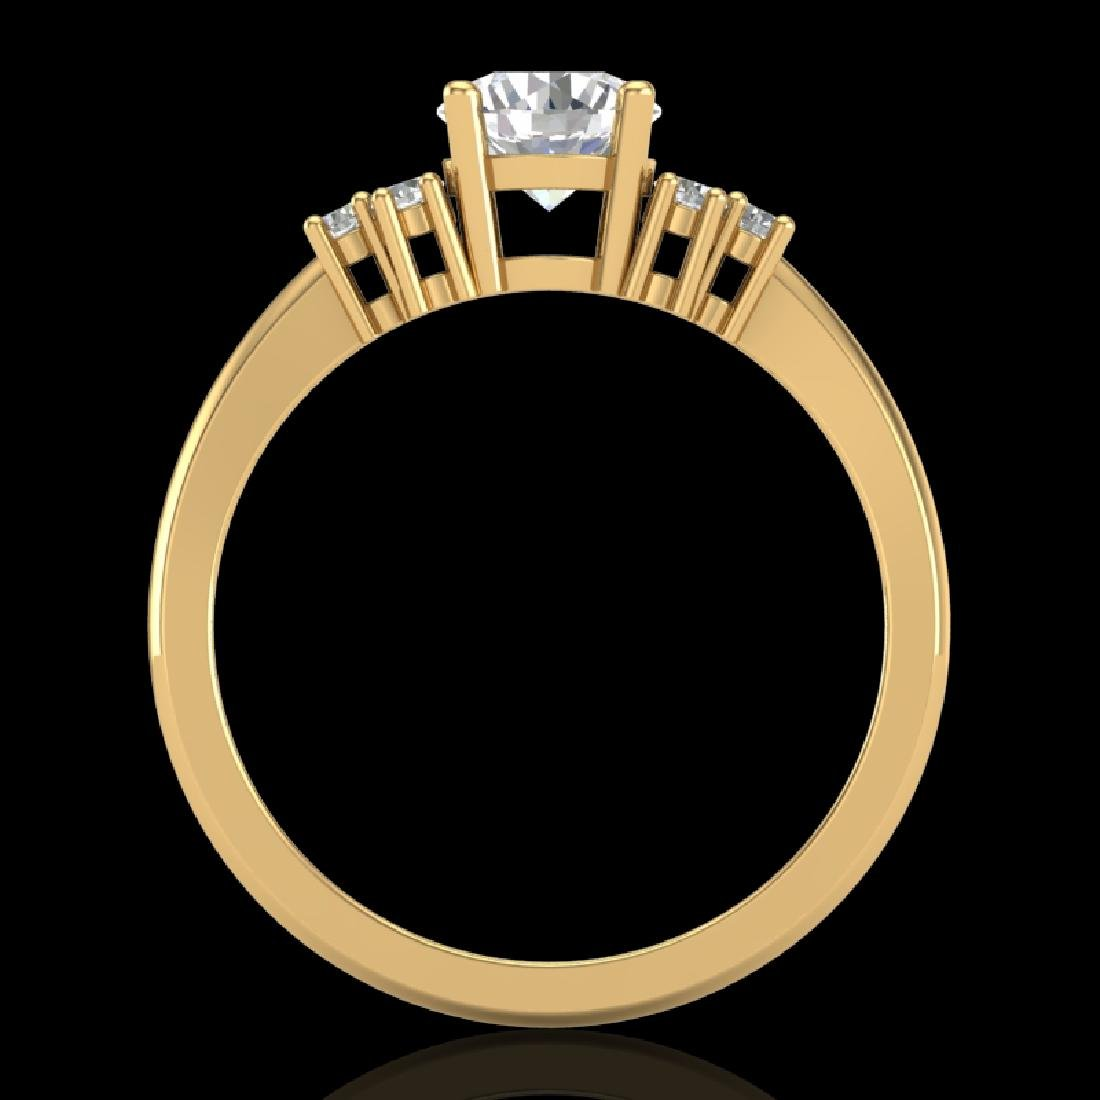 1 CTW VS/SI Diamond Solitaire Ring 18K Yellow Gold - 2